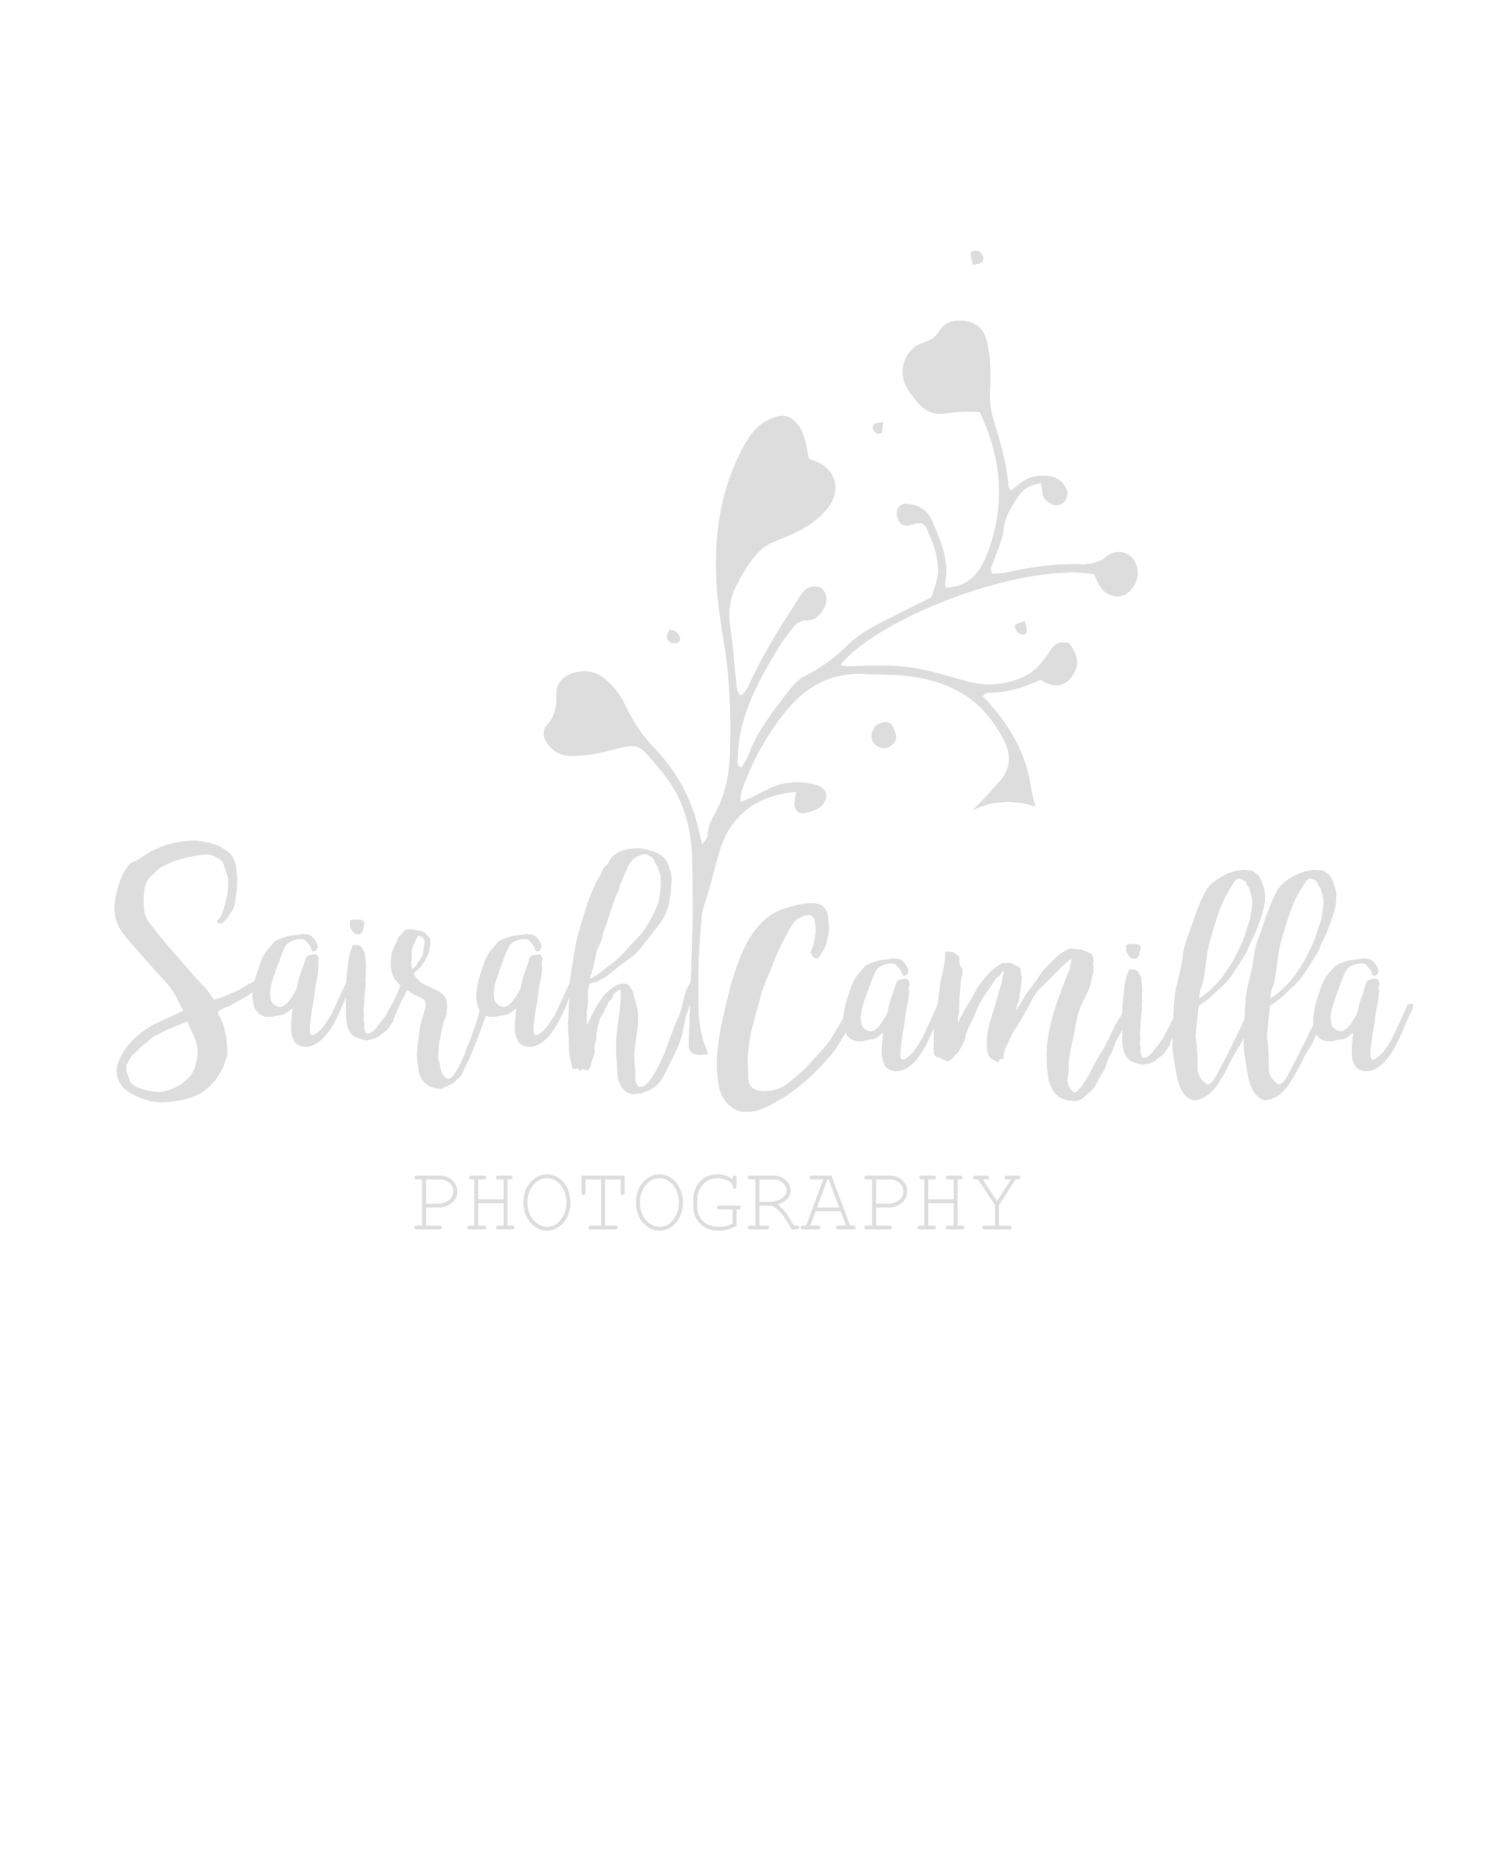 Sairah Camilla Photography